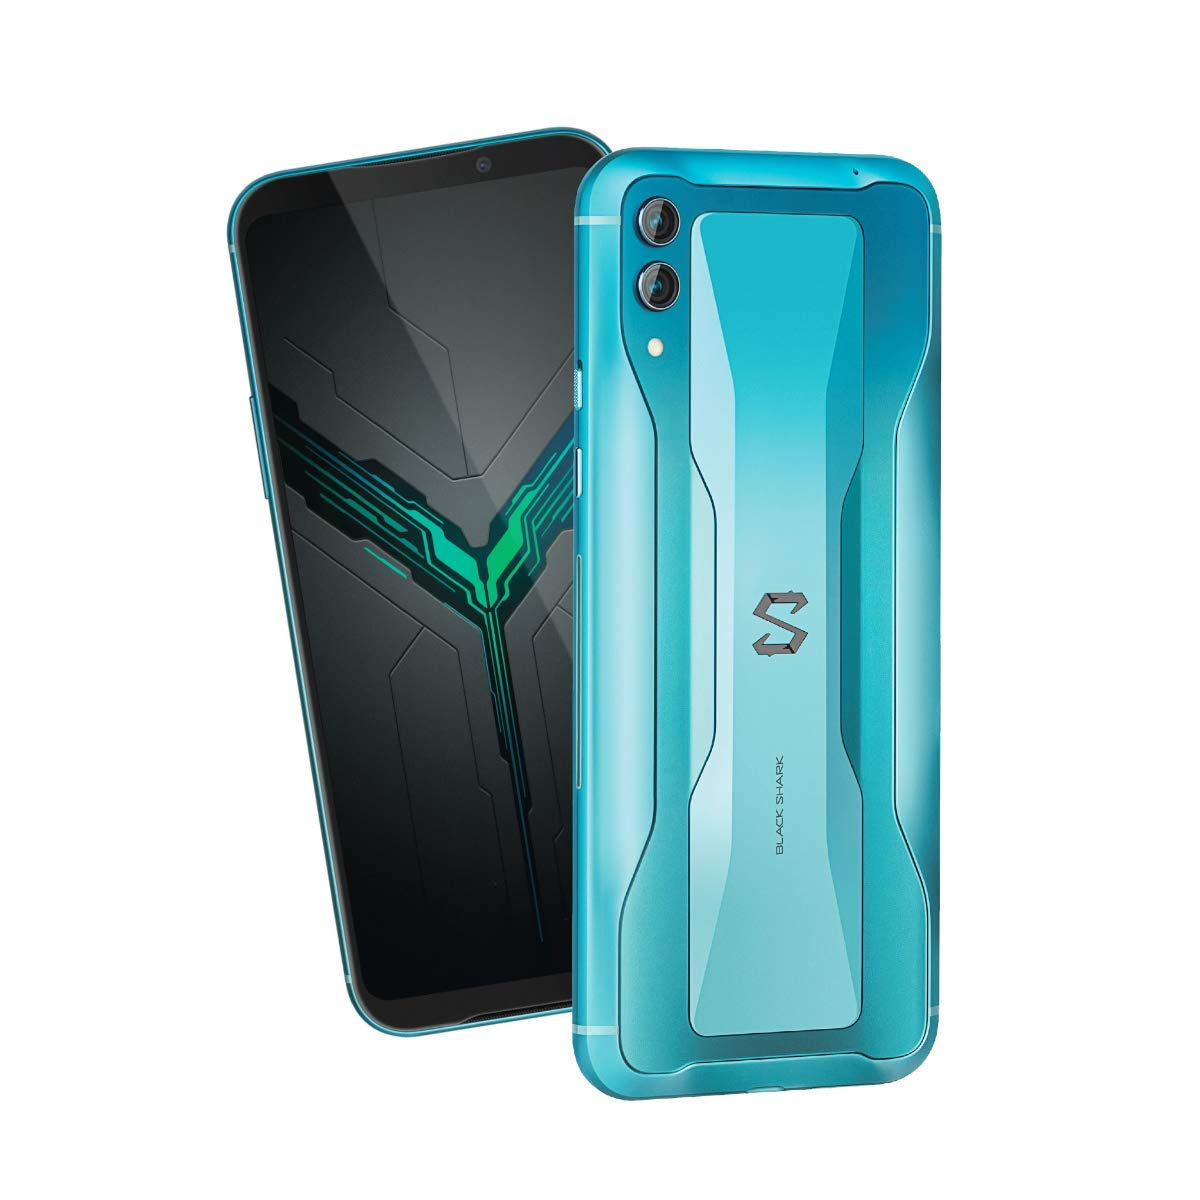 Γερμανικό amazon 👌 Black Shark 2 8GB + 128GB Blue – Dual SIM, 6.39 inch AMOLED, Snapdragon 855, Adreno 640 GPU, Liquid Cooling 3.0, Dual Reversing Camera 48MP + 12MP + Flash and Front 20MP – Global Version by Black Shark